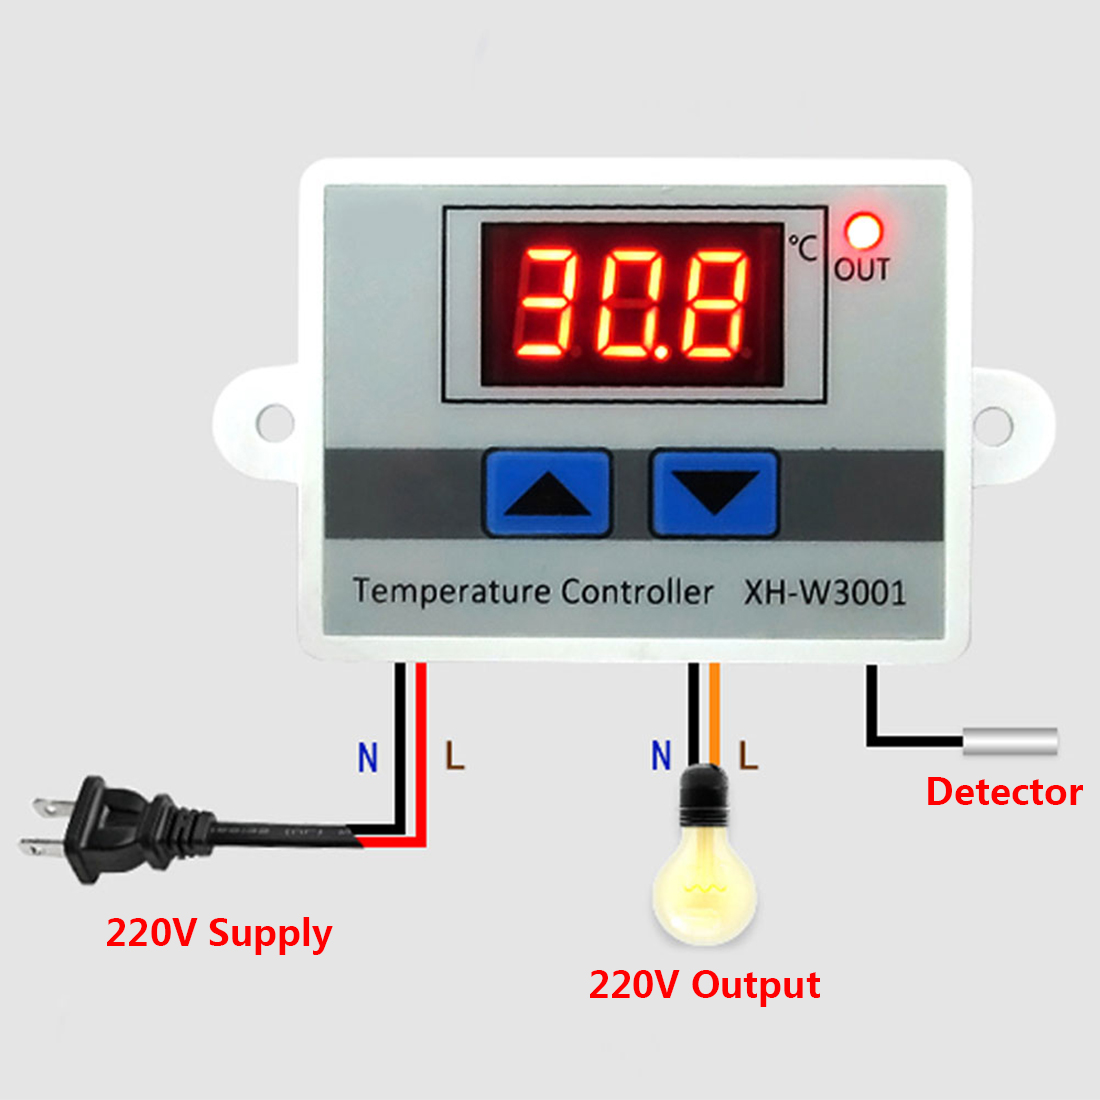 Digital Led Thermometer Temperature Controller Ac220v 10a Thermostat Stc1000 Microcomputer 220v W Sensor Incubator Control Probe Weather Station In Instruments From